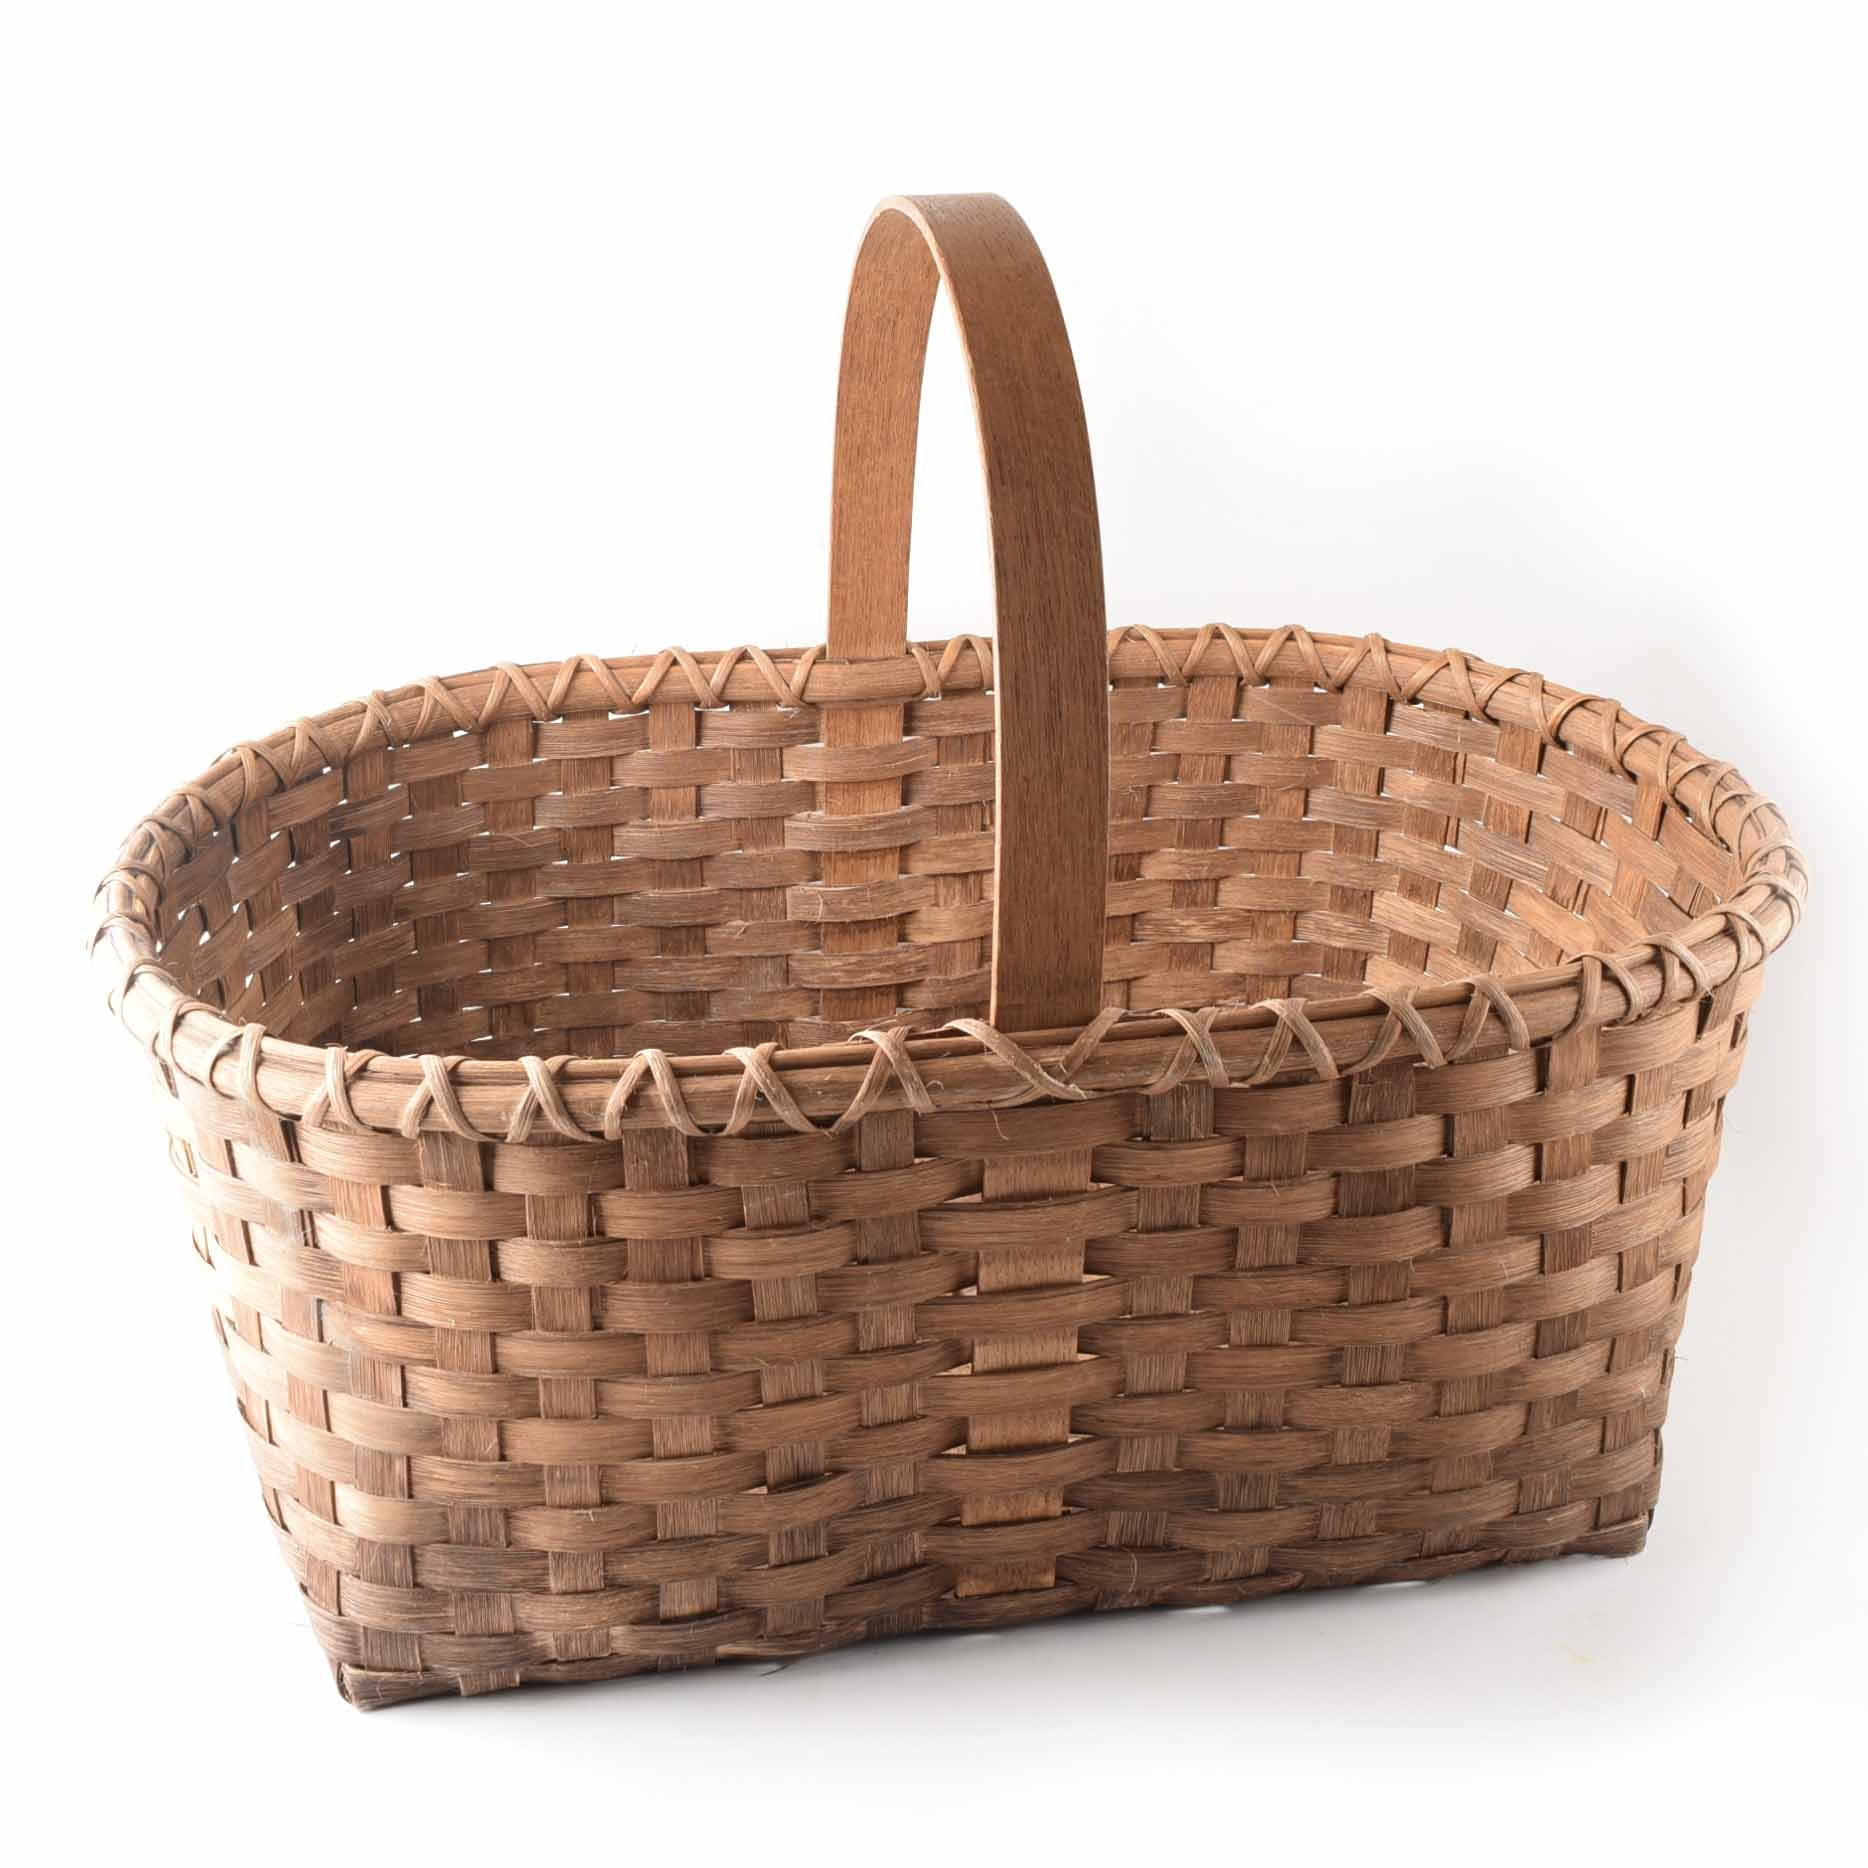 Antique Decorative Baskets Vintage Decorative Baskets In Collectibles Traditional Furnishings